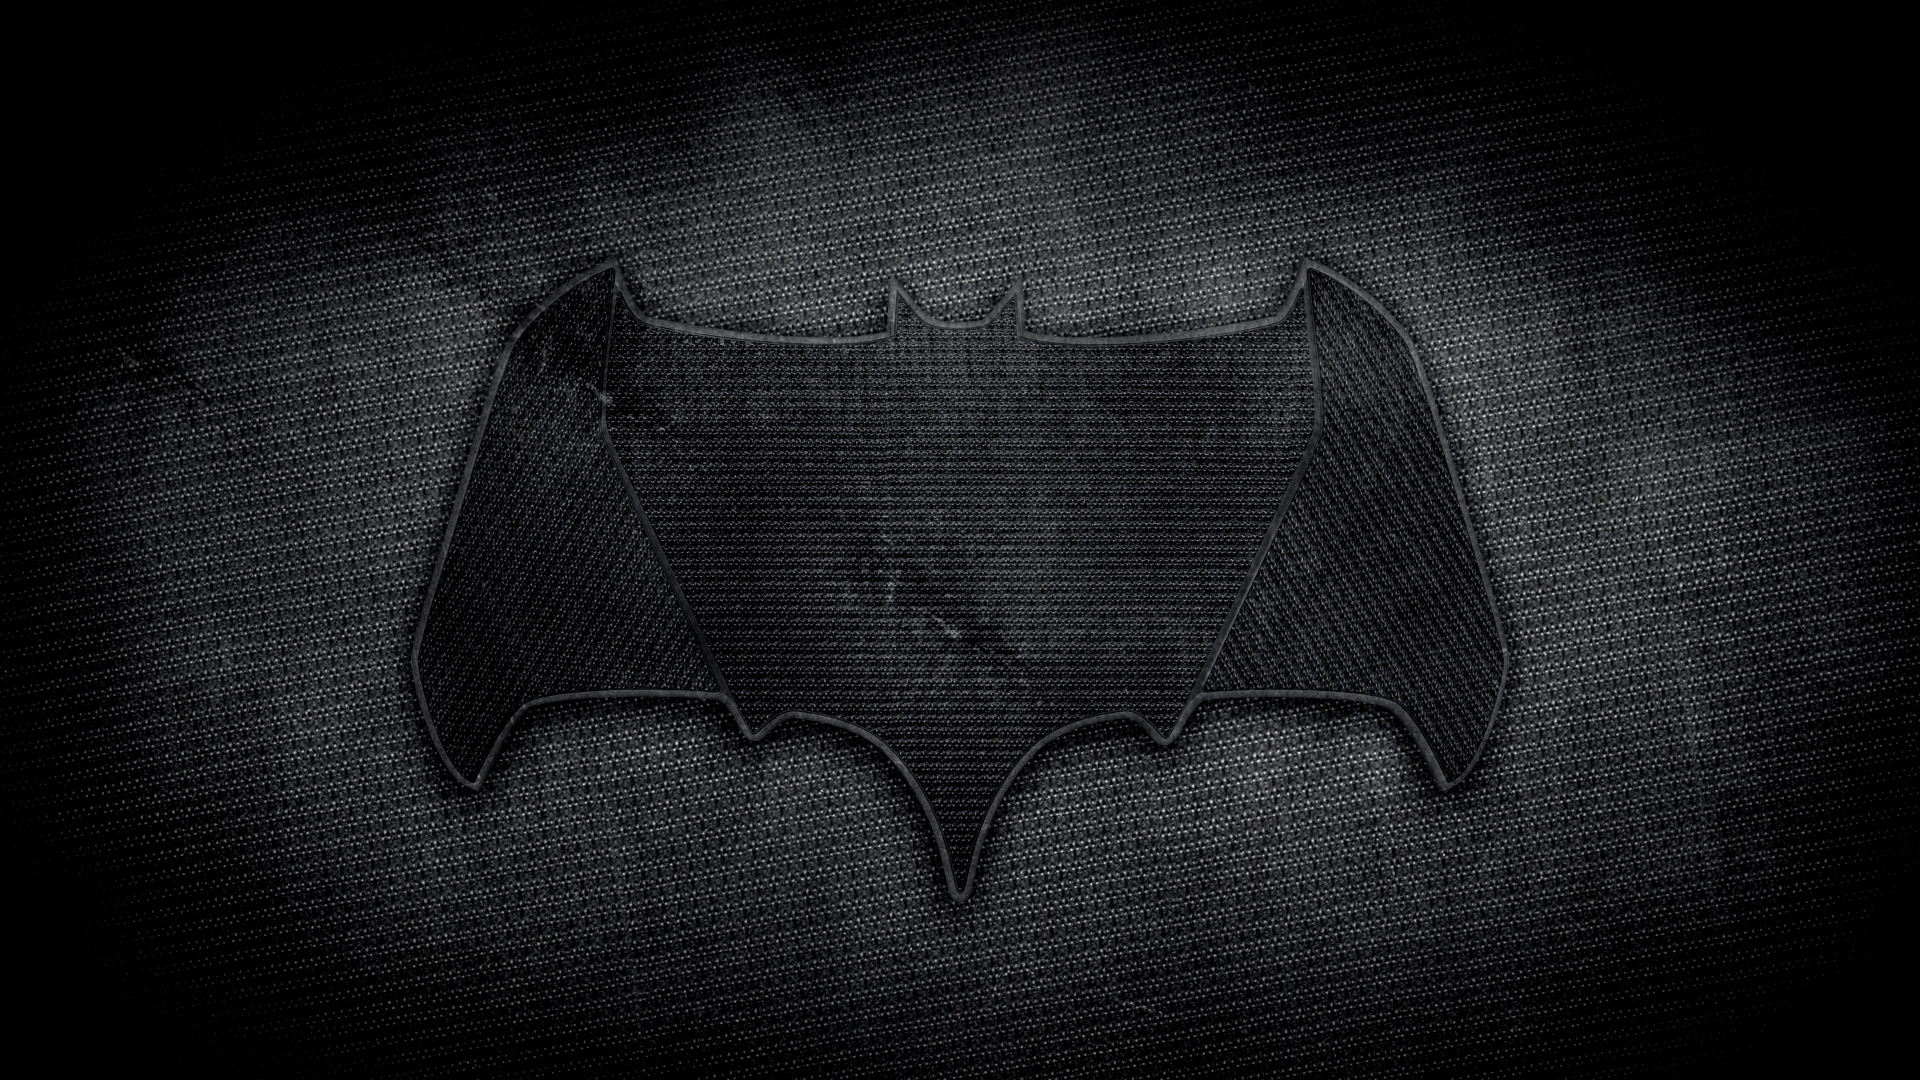 A sketch of what I think the bat symbol will look like based on